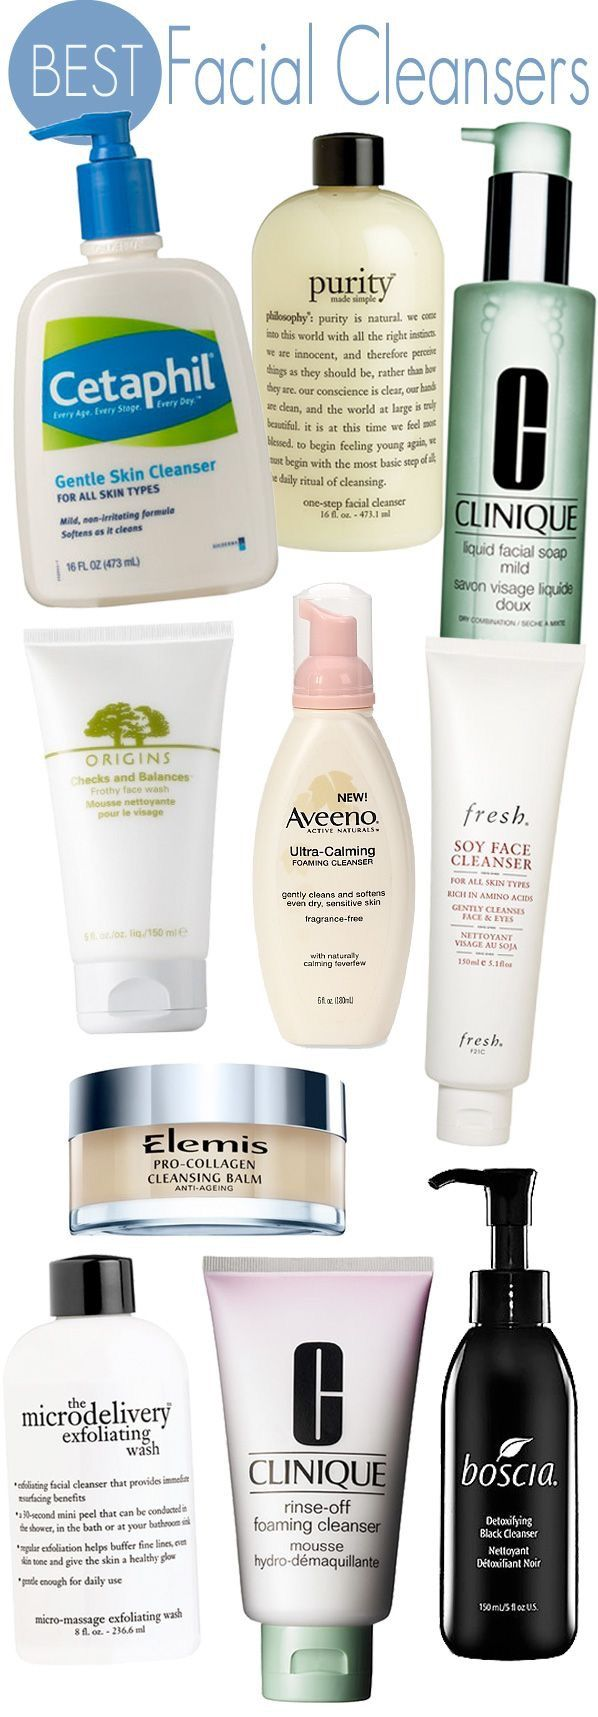 1. Cetaphil Gentle Skin Cleanser  2. Philosophy Purity Made Simple  3. Clinique Liquid Facial Soap  4. Elemis Pro-Collagen Cleansing Balm  5. Origins Checks and Balances Frothy Face Wash  6. Aveeno Ultra Calming Foaming Cleanser * pinterestfashionfinds.wordpress.com/2014/12/28/best-facial-cleansers/amp/